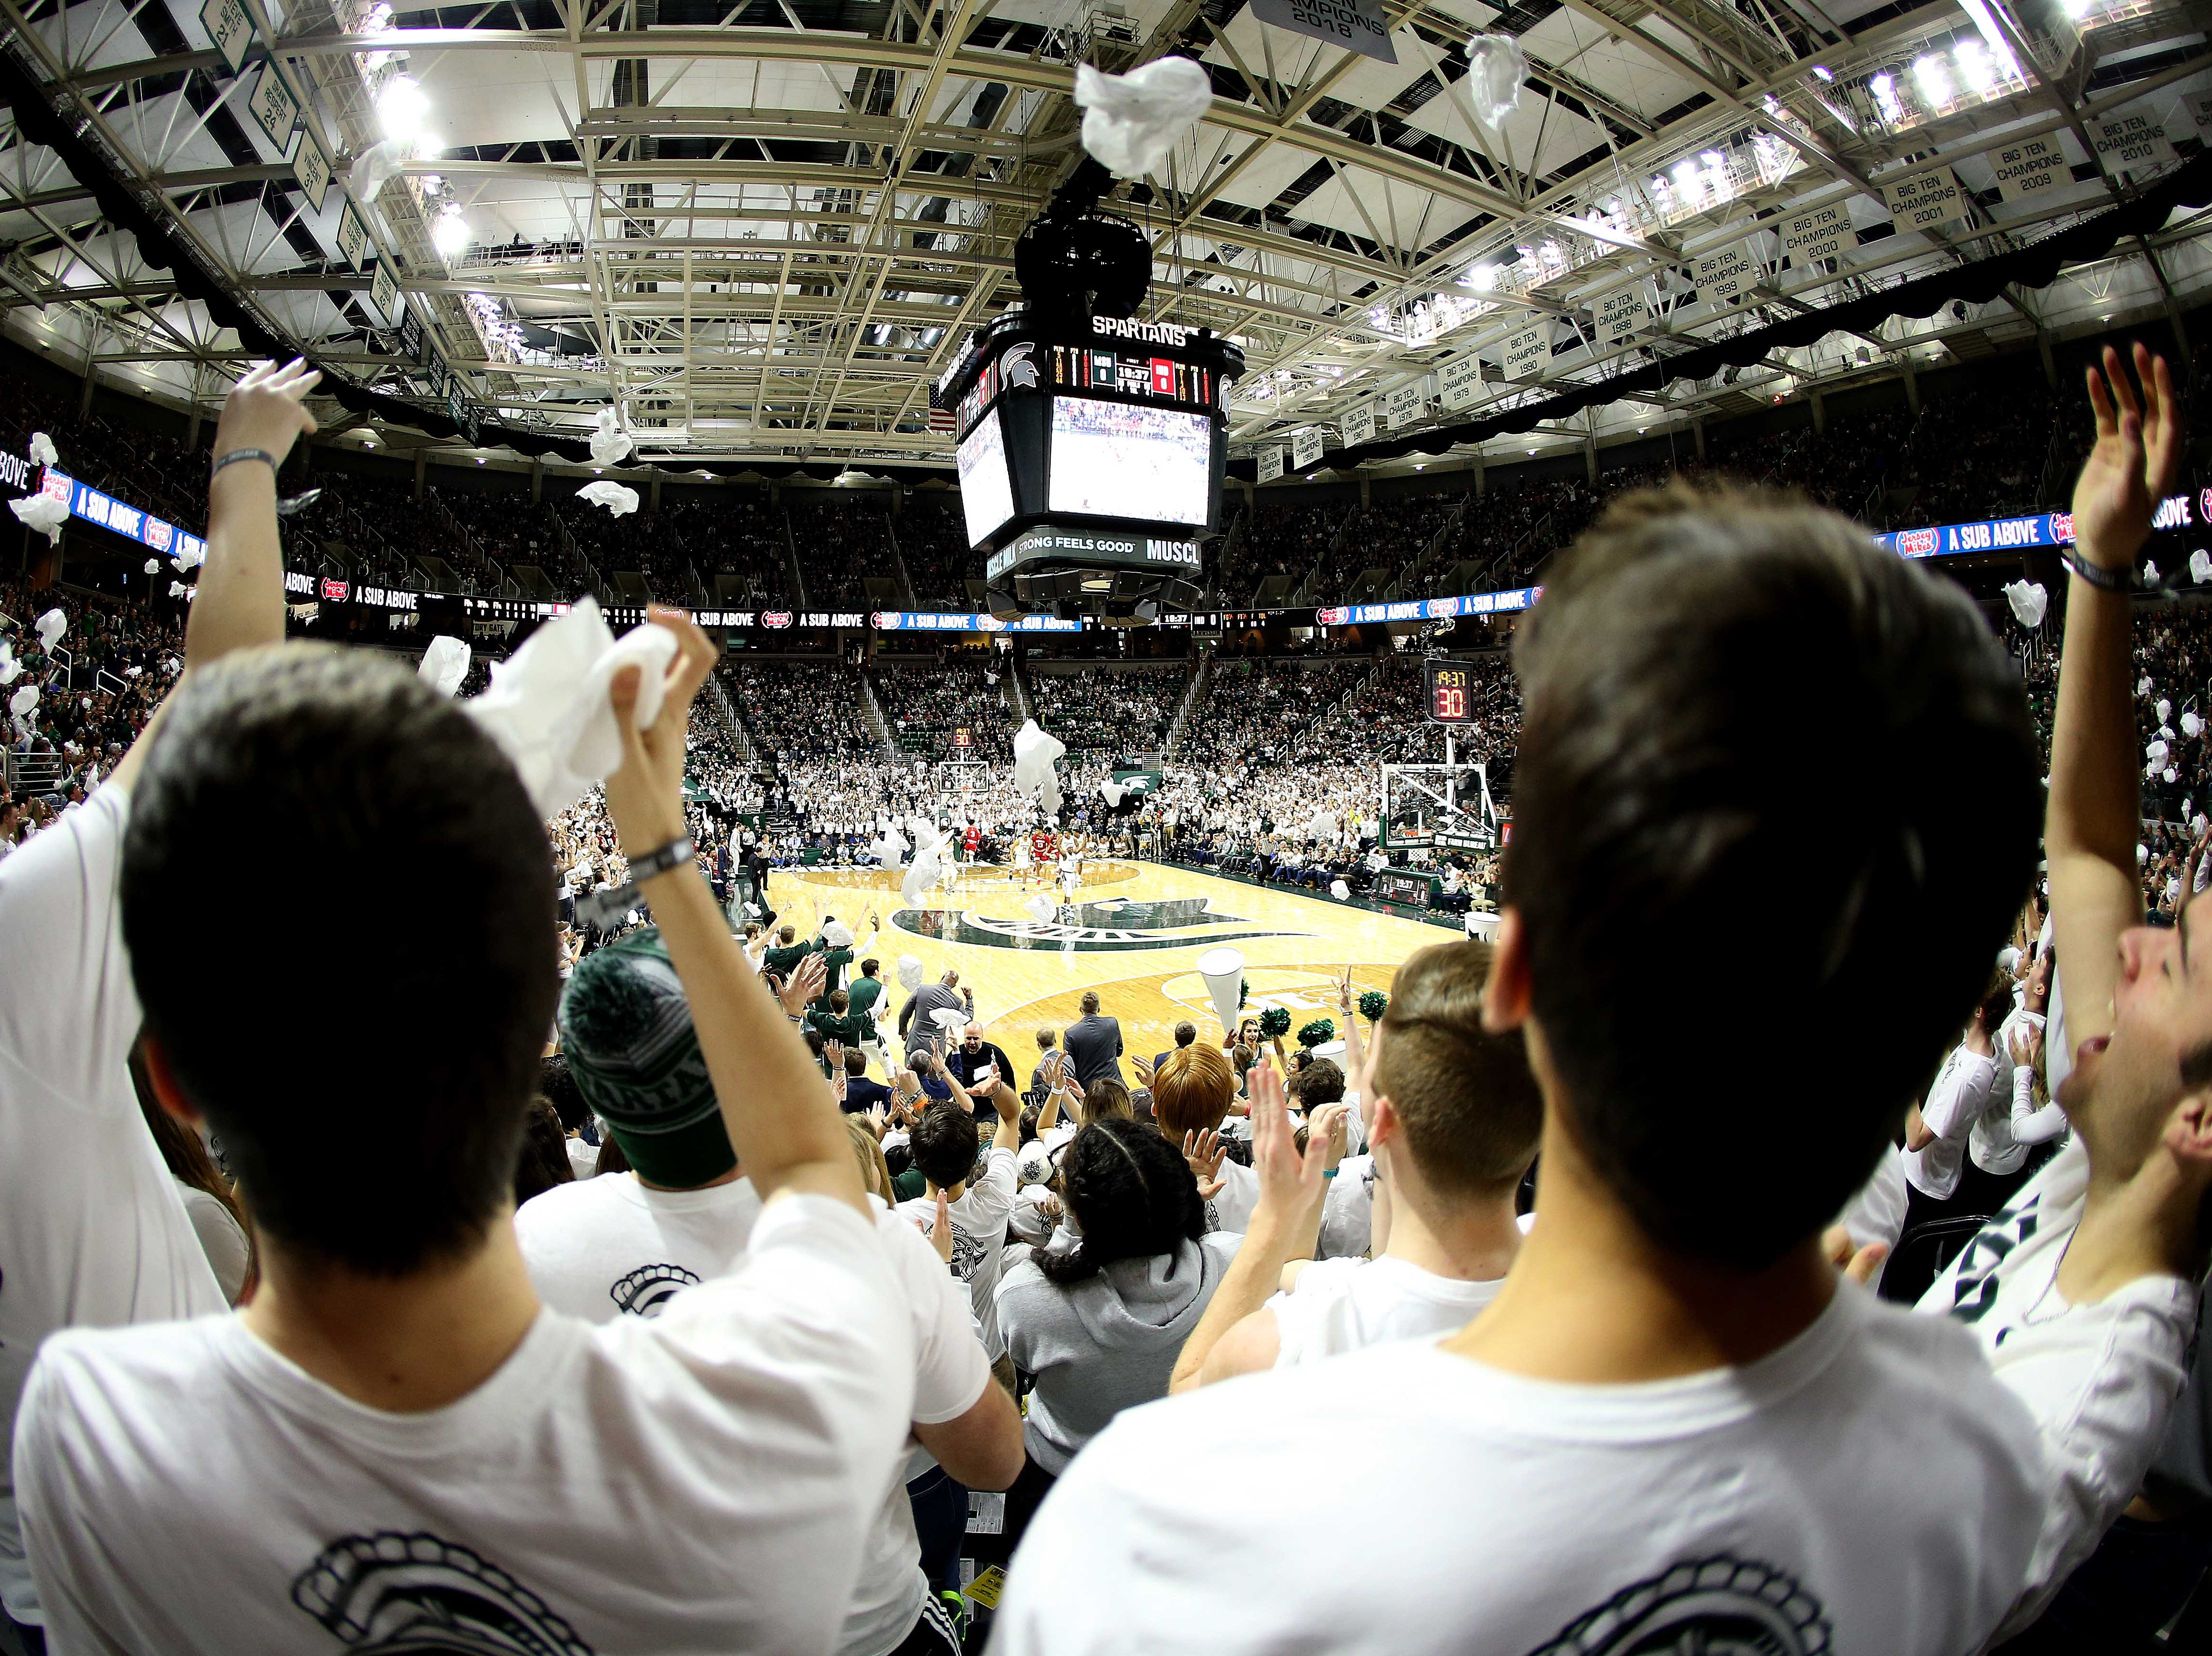 Feb 2, 2019; East Lansing, MI, USA; Michigan State Spartans student section performs during the first half  between the Michigan State Spartans and the Indiana Hoosiers at the Breslin Center. Mandatory Credit: Mike Carter-USA TODAY Sports